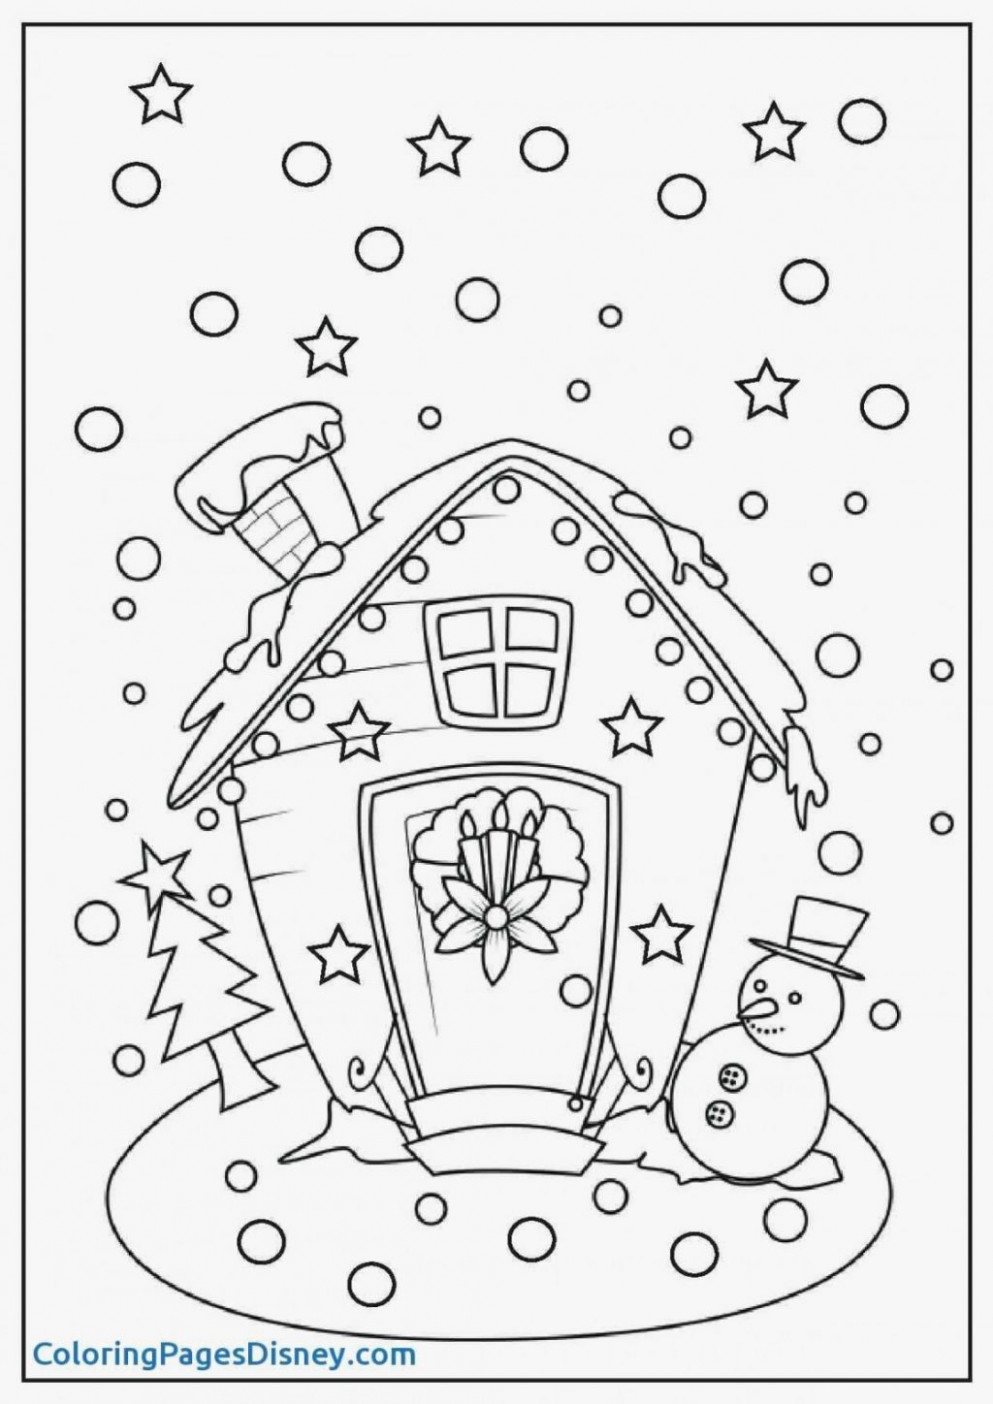 Coloring Ideas : Free Christmasd Coloring Pages Printable For ..